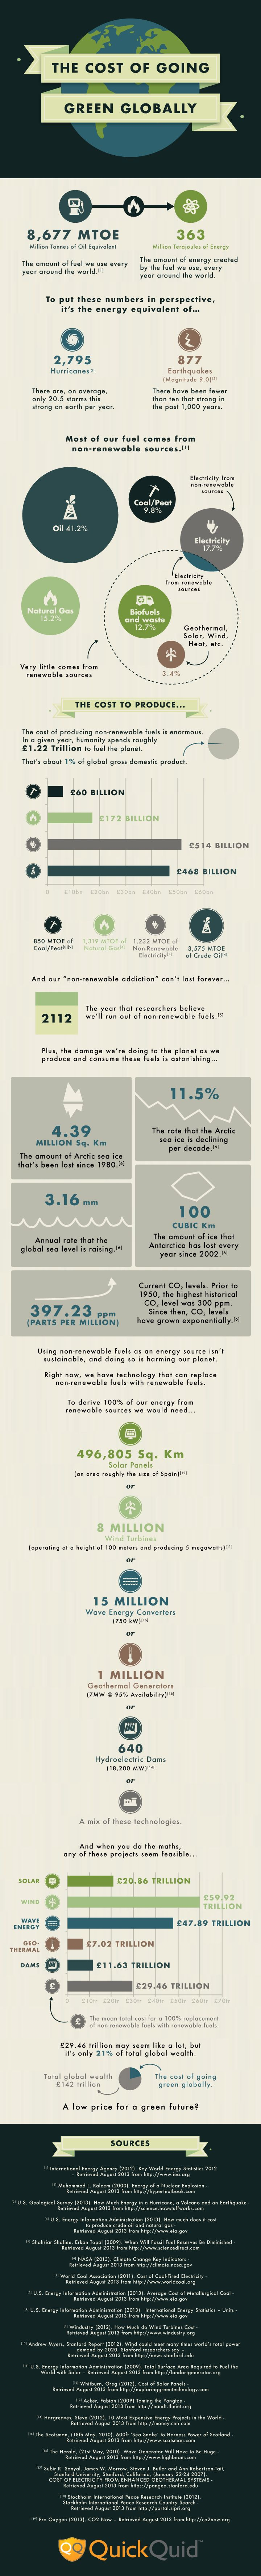 the-cost-of-going-green-globally